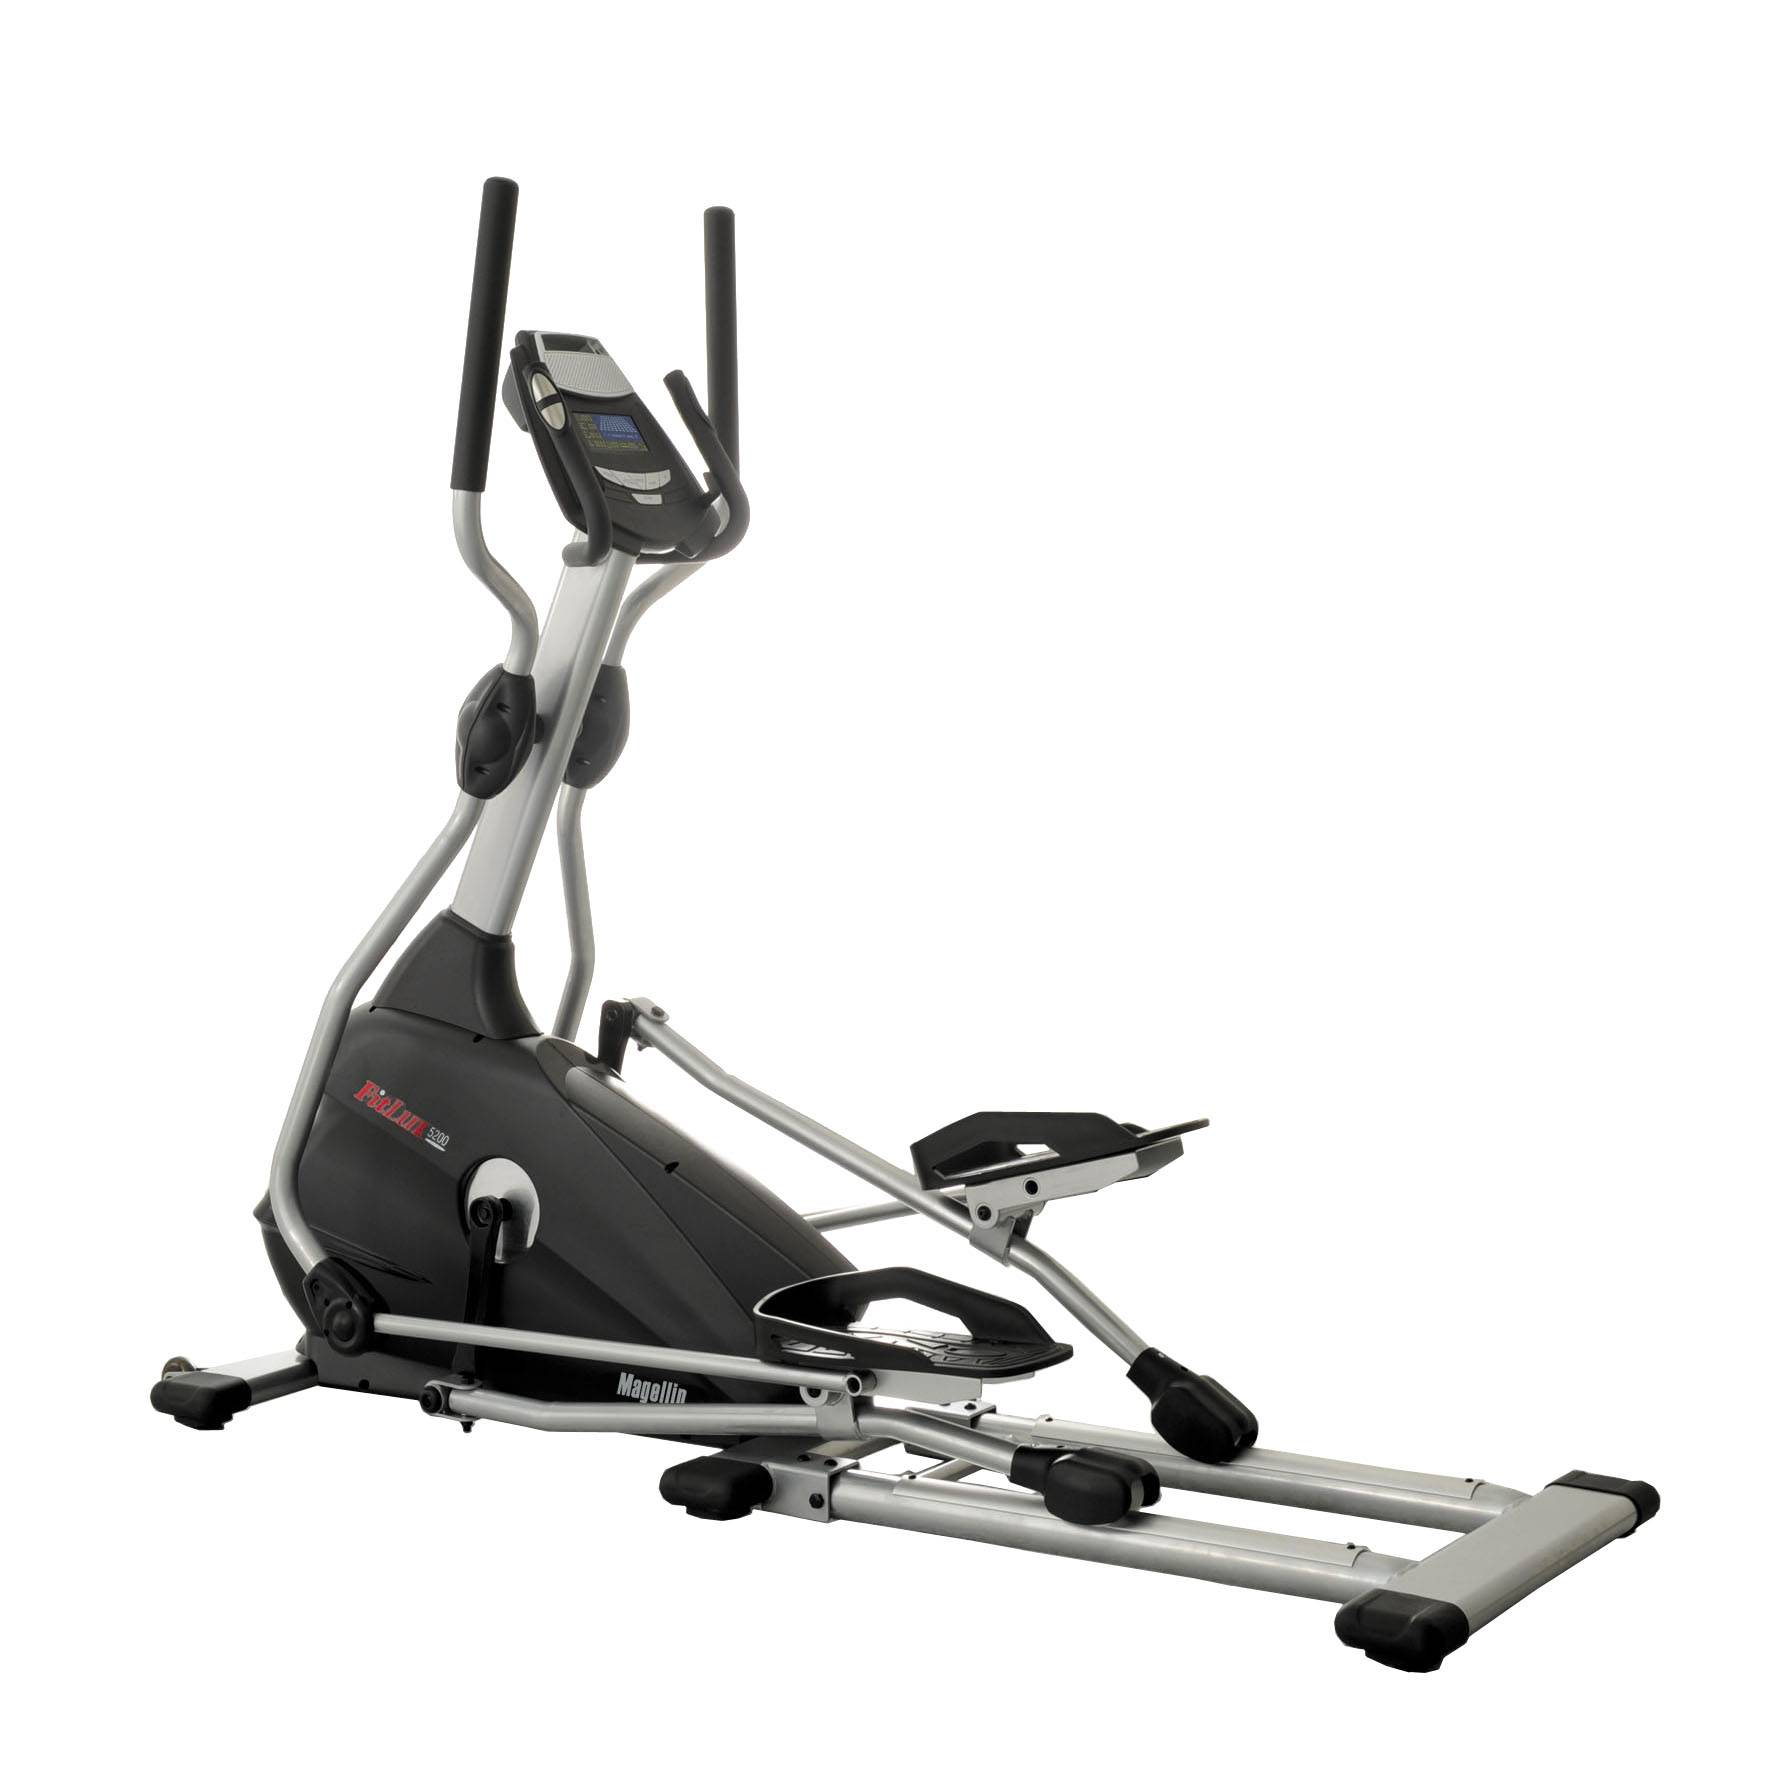 Cosco FITLUX 5200 Elliptical Cross Trainer